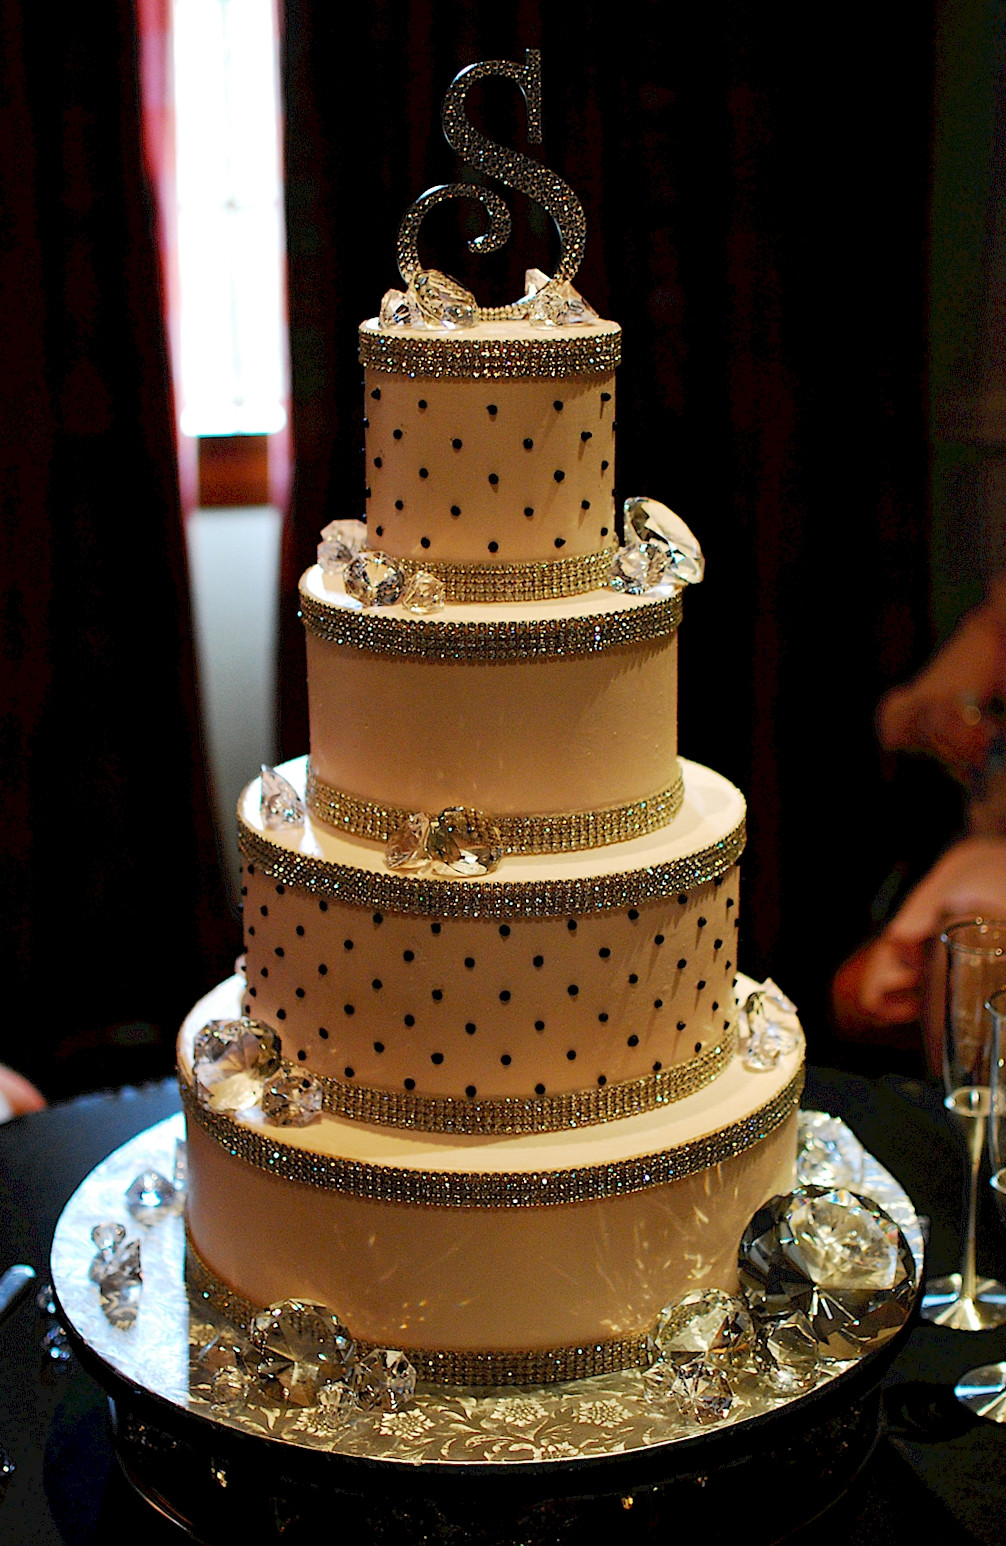 Bling Wedding Cakes  Cup a Dee Cakes Blog Super Bling Diamond Wedding Cake